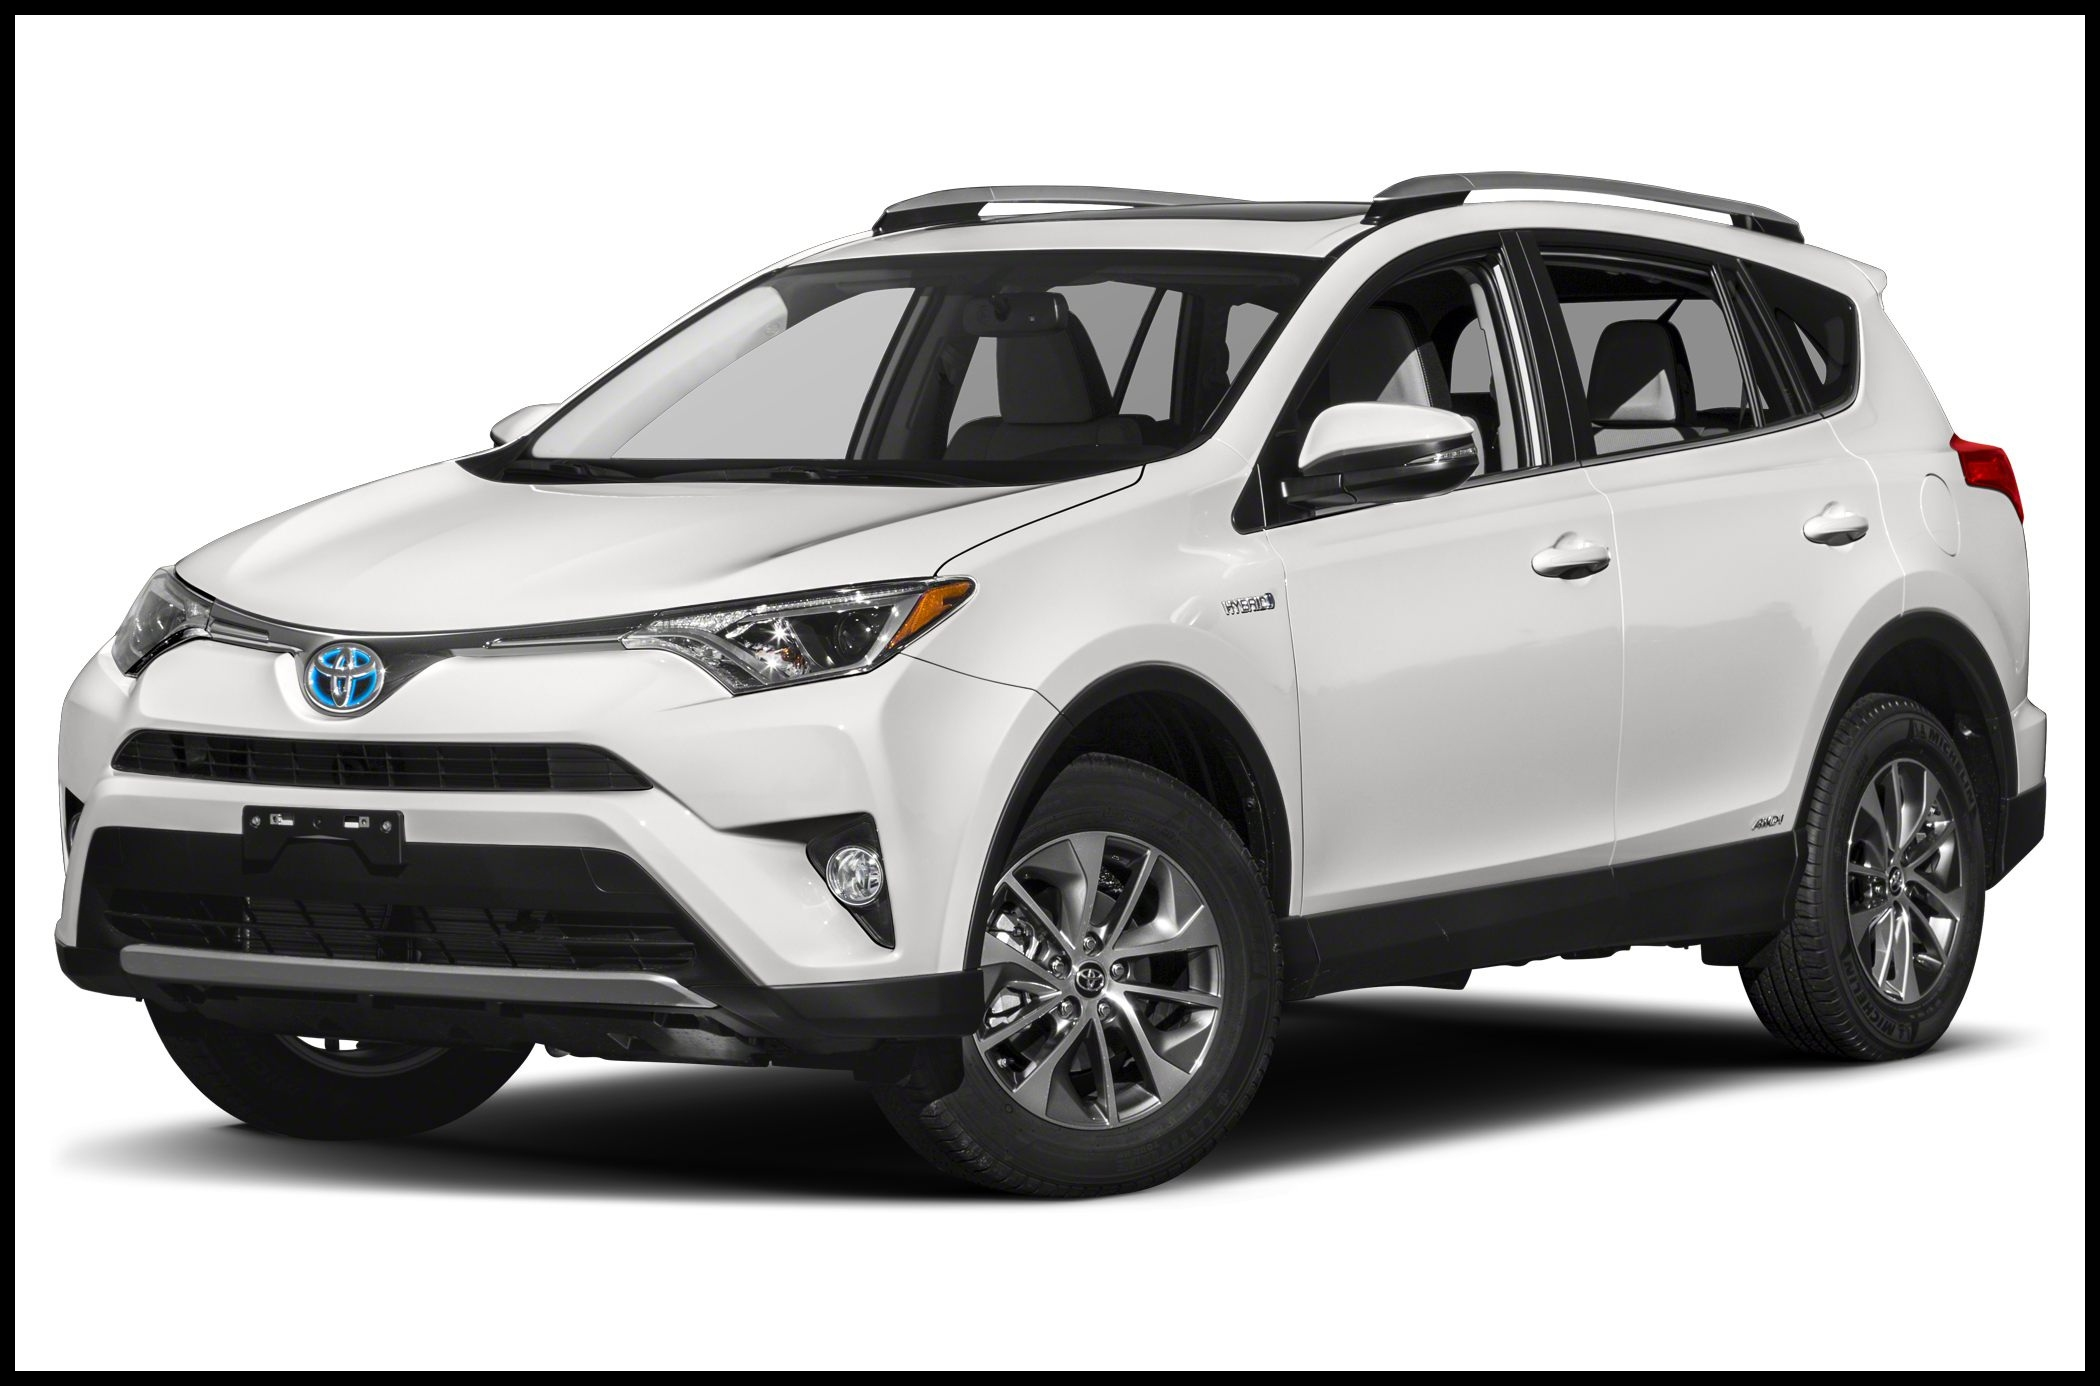 Hot Rav 4 Logo toyota Rav4 Interior Awesome toyota Rav4 2 0d 150d 2wd Price and